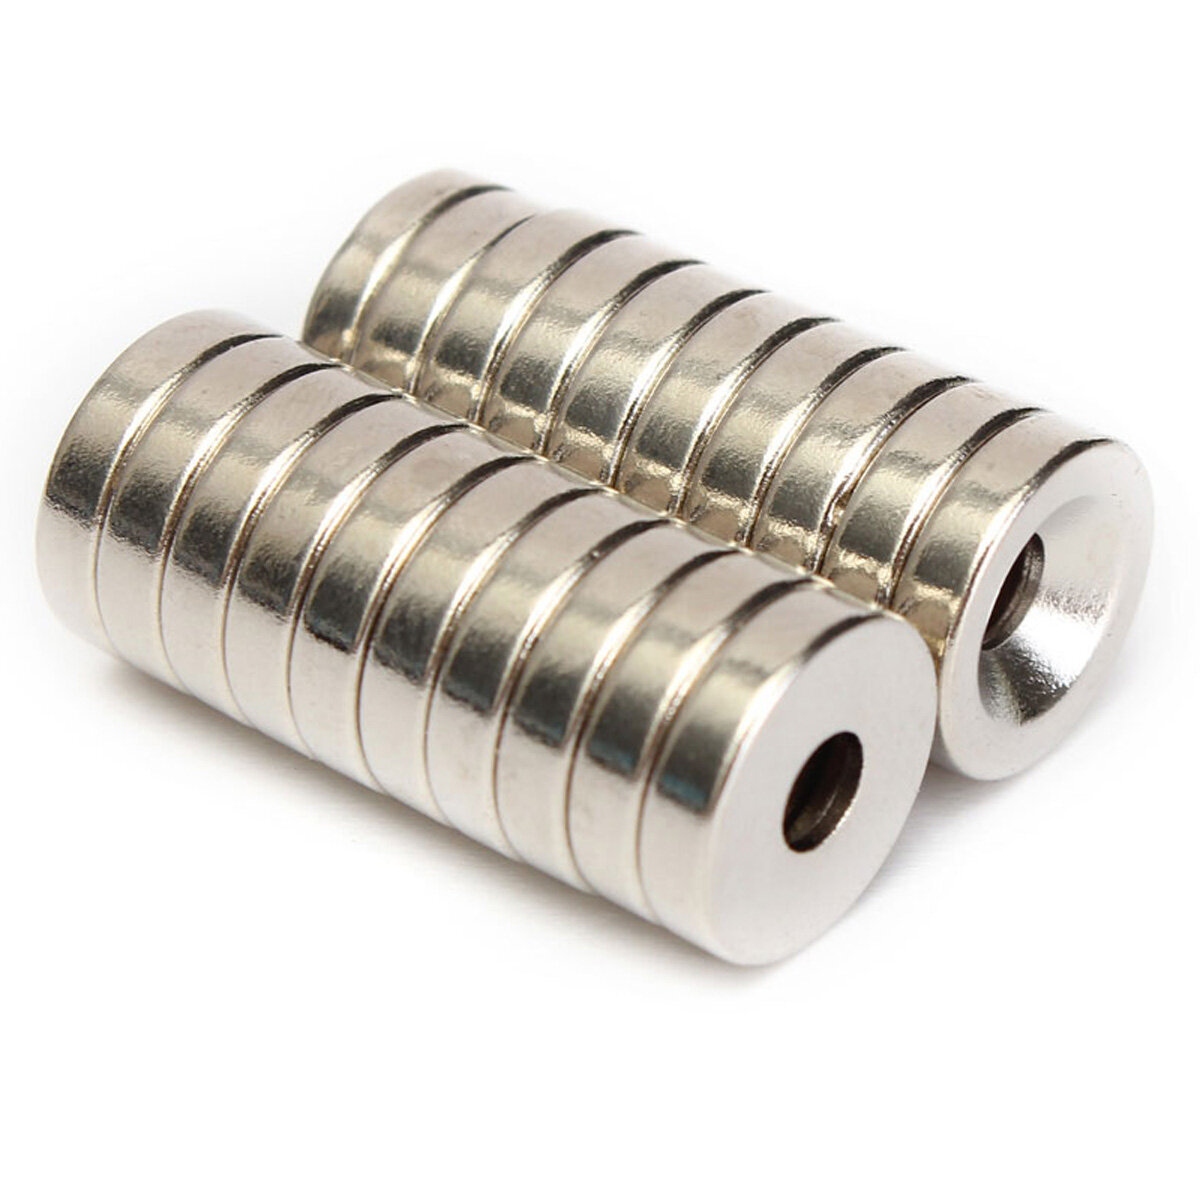 20pcs N50 12x3mm Strong Countersunk Ring Magnets 4mm Hole Rare Earth Neodymium